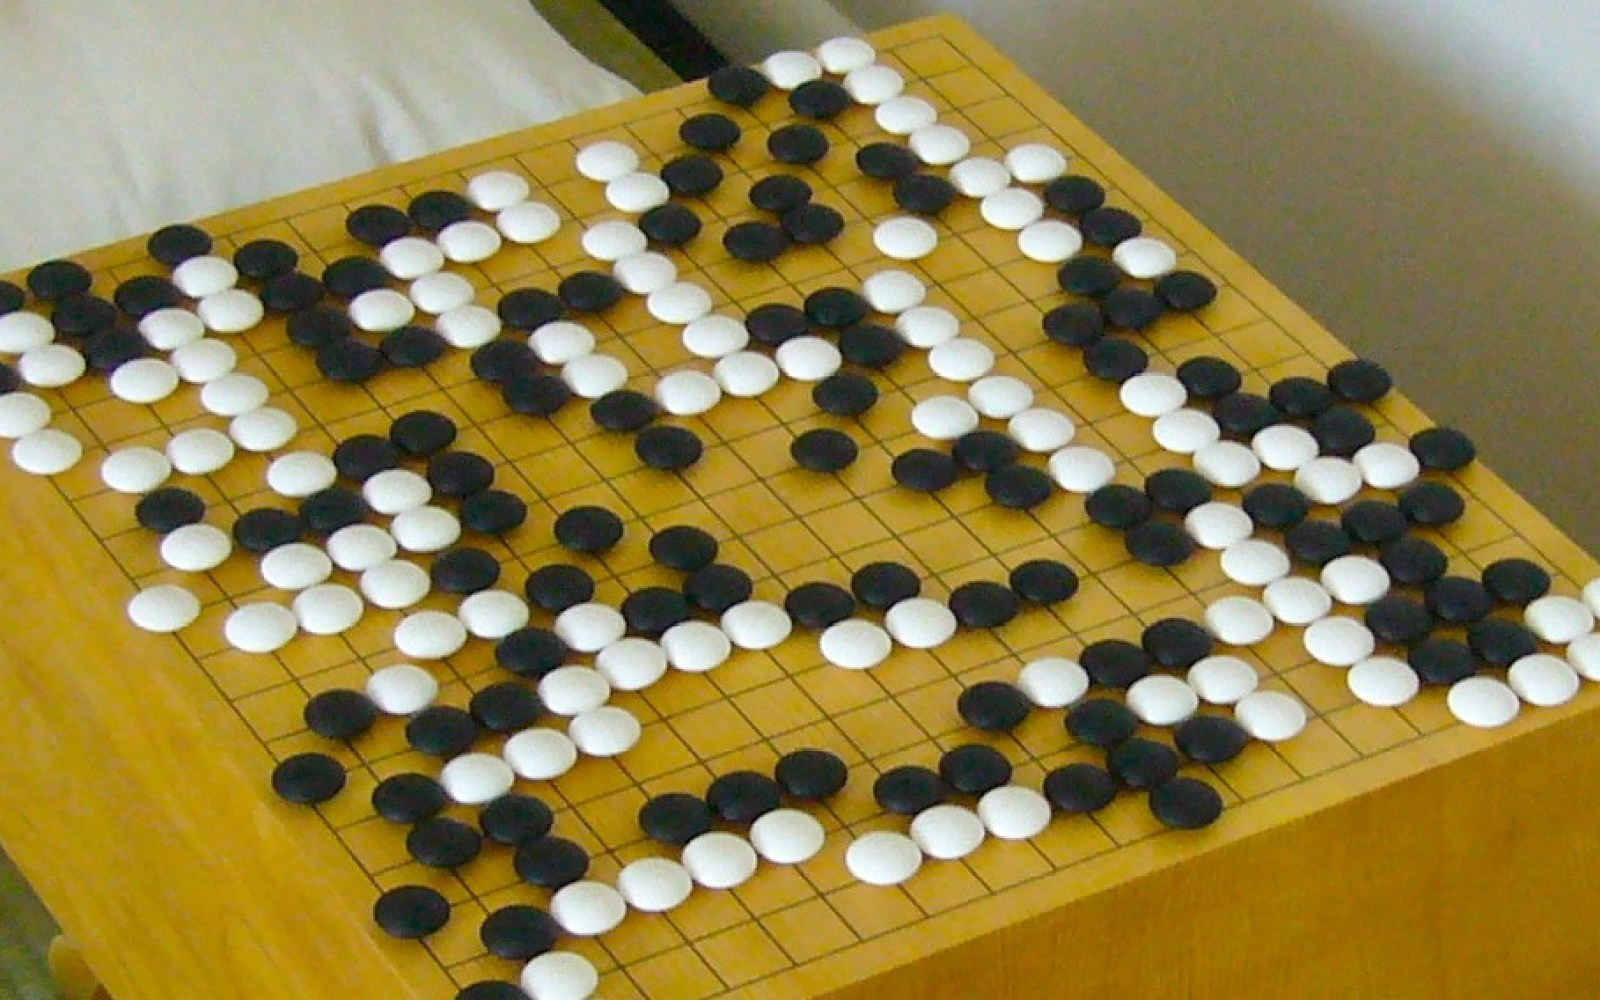 Google's Go champion-beating AI machine will have its next match livestreamed on YouTube